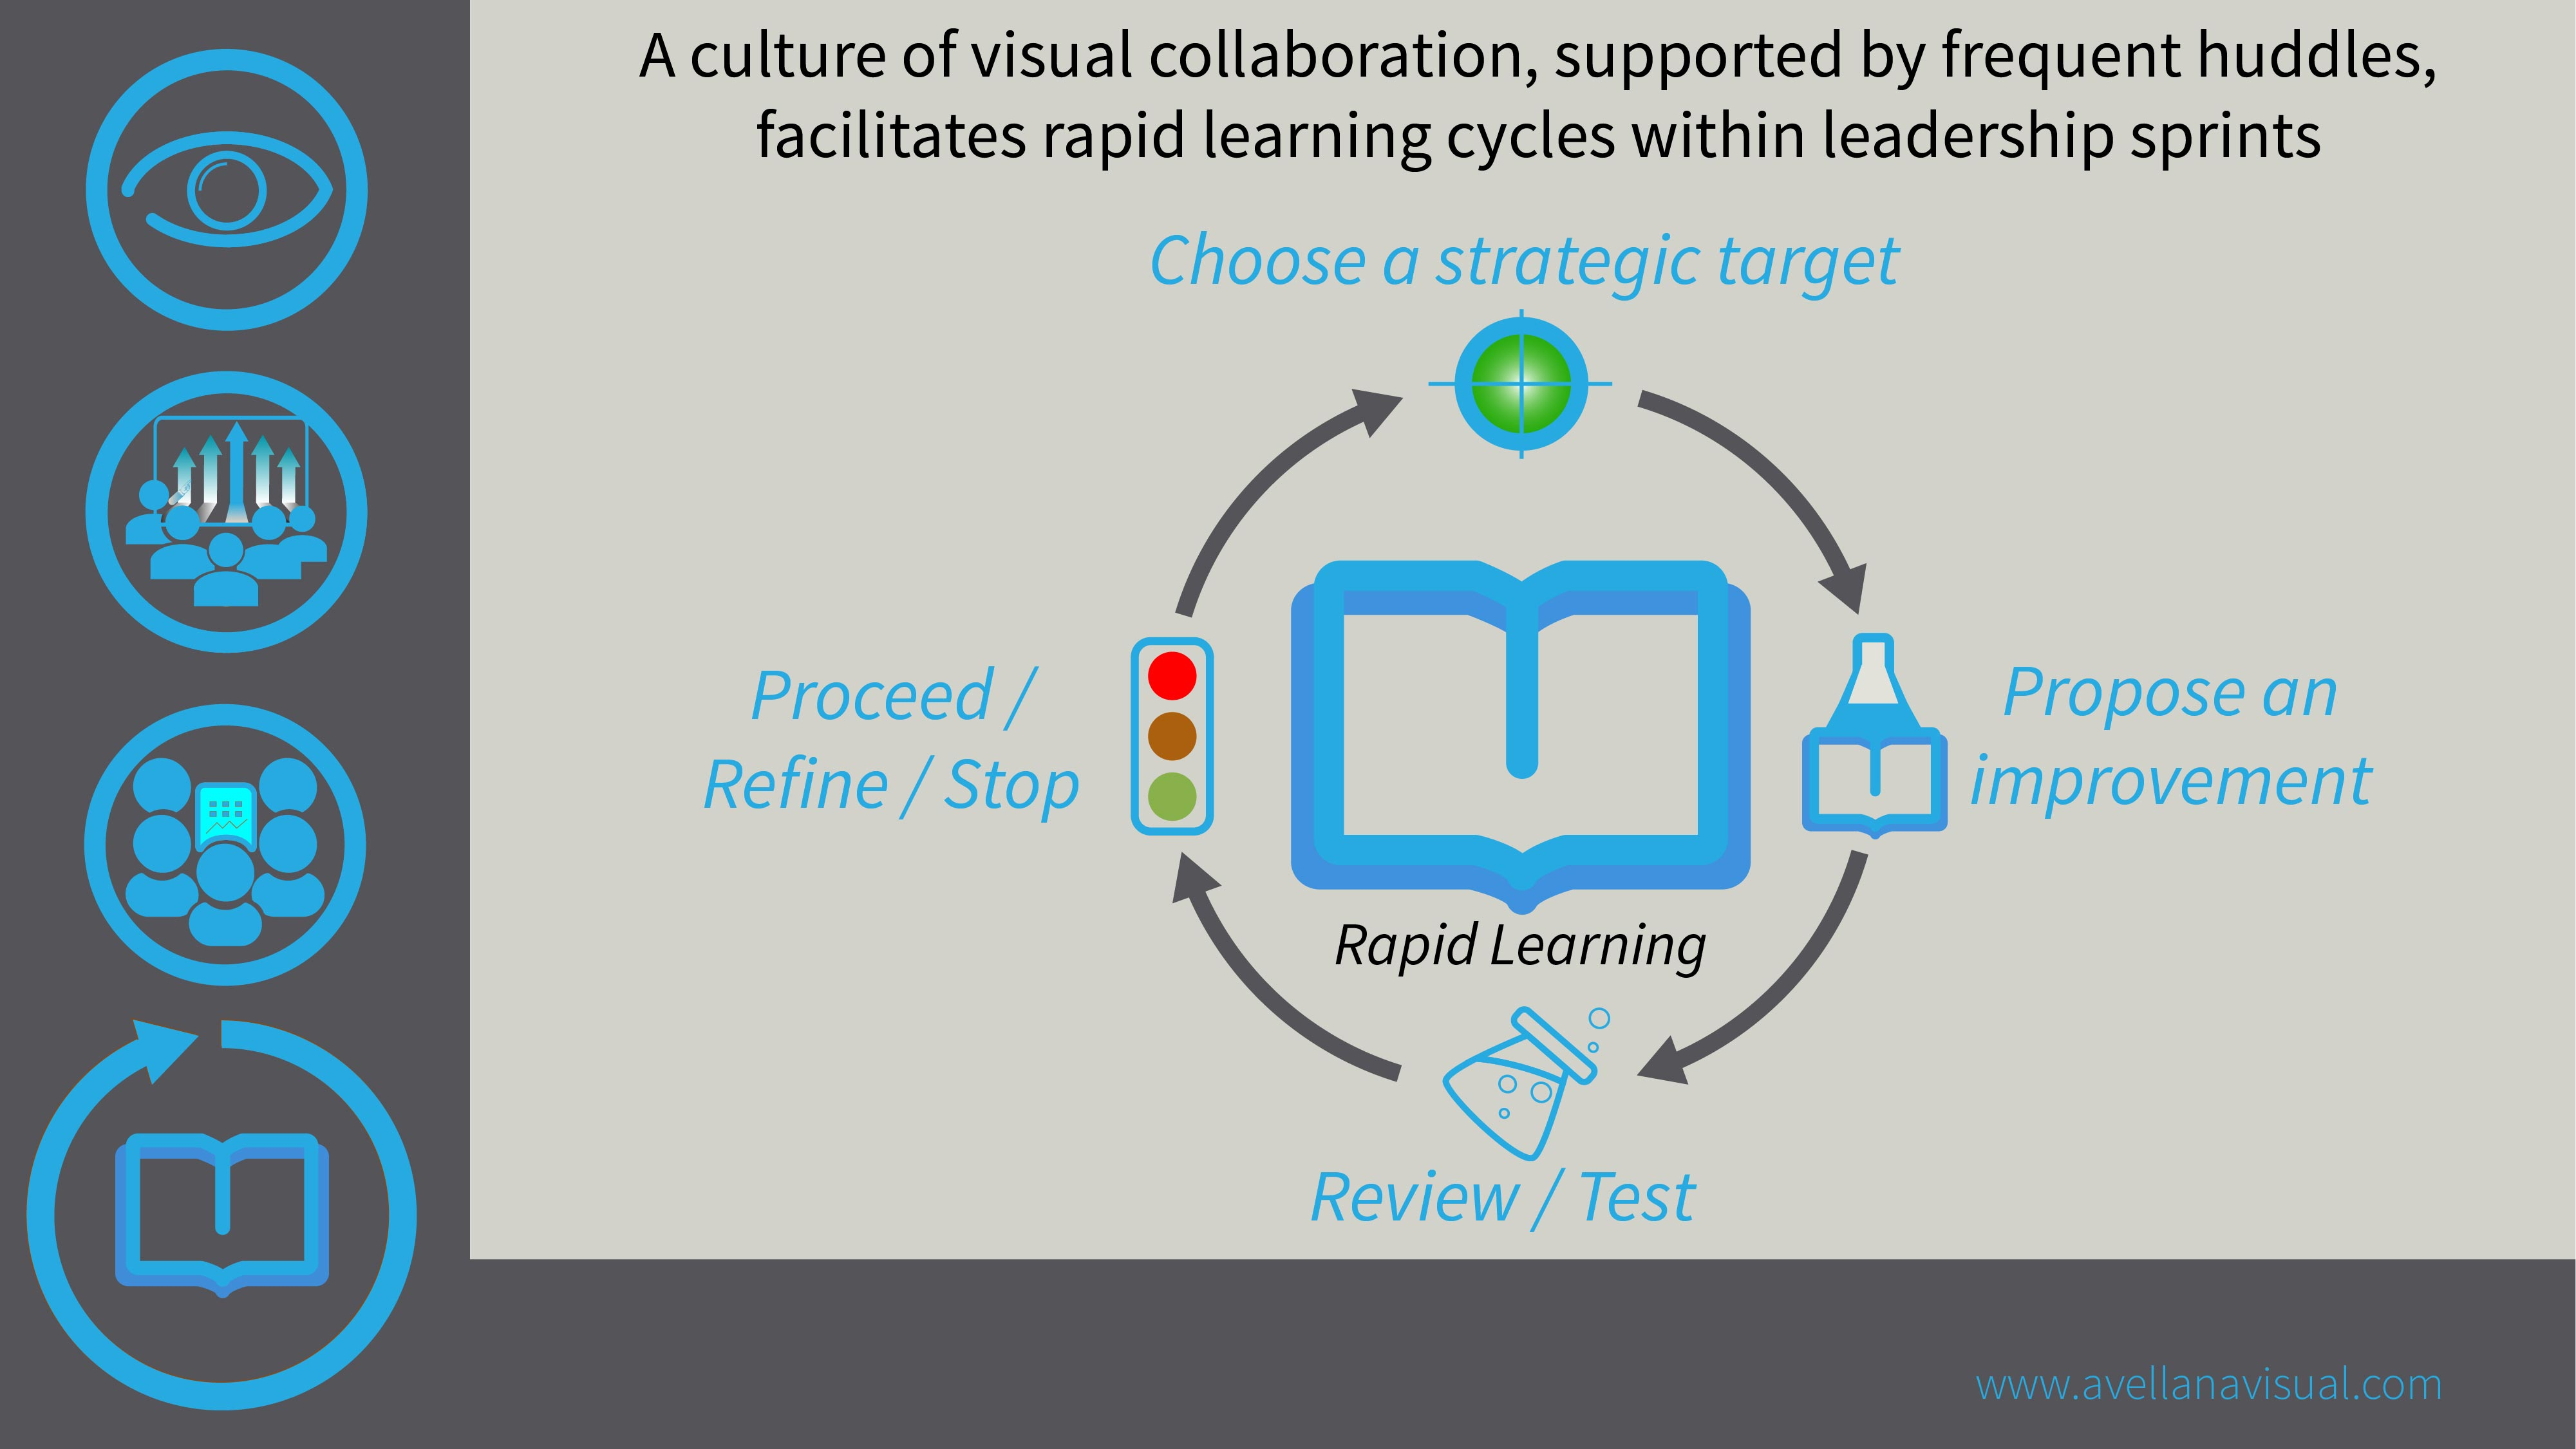 15 Visual enables rapid learning cycles